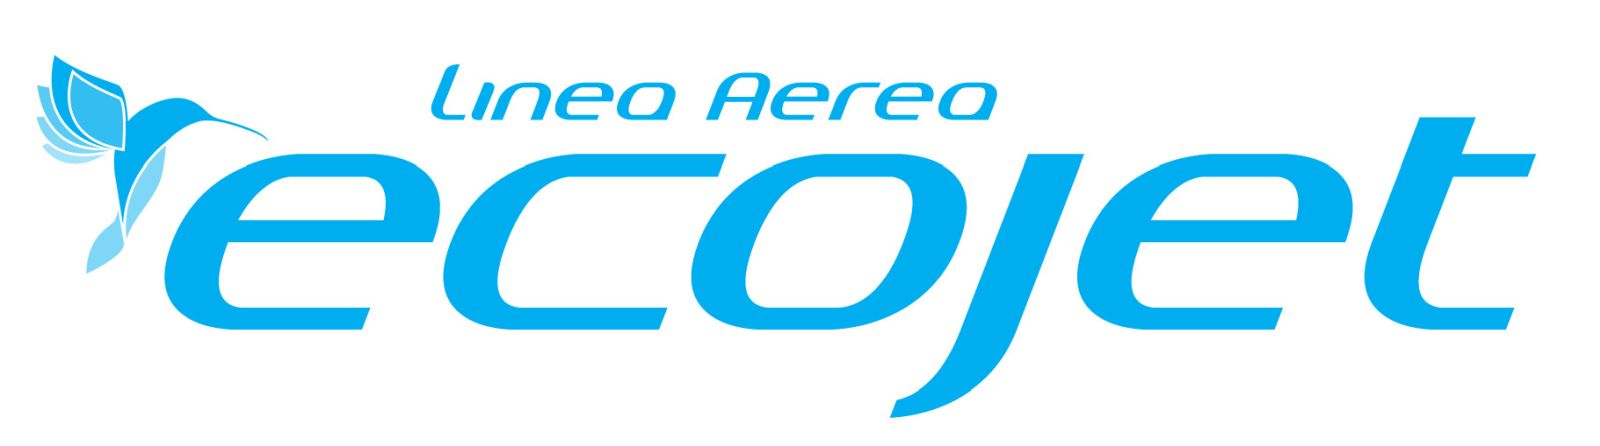 Listing Airlines - Aviation Fanatic